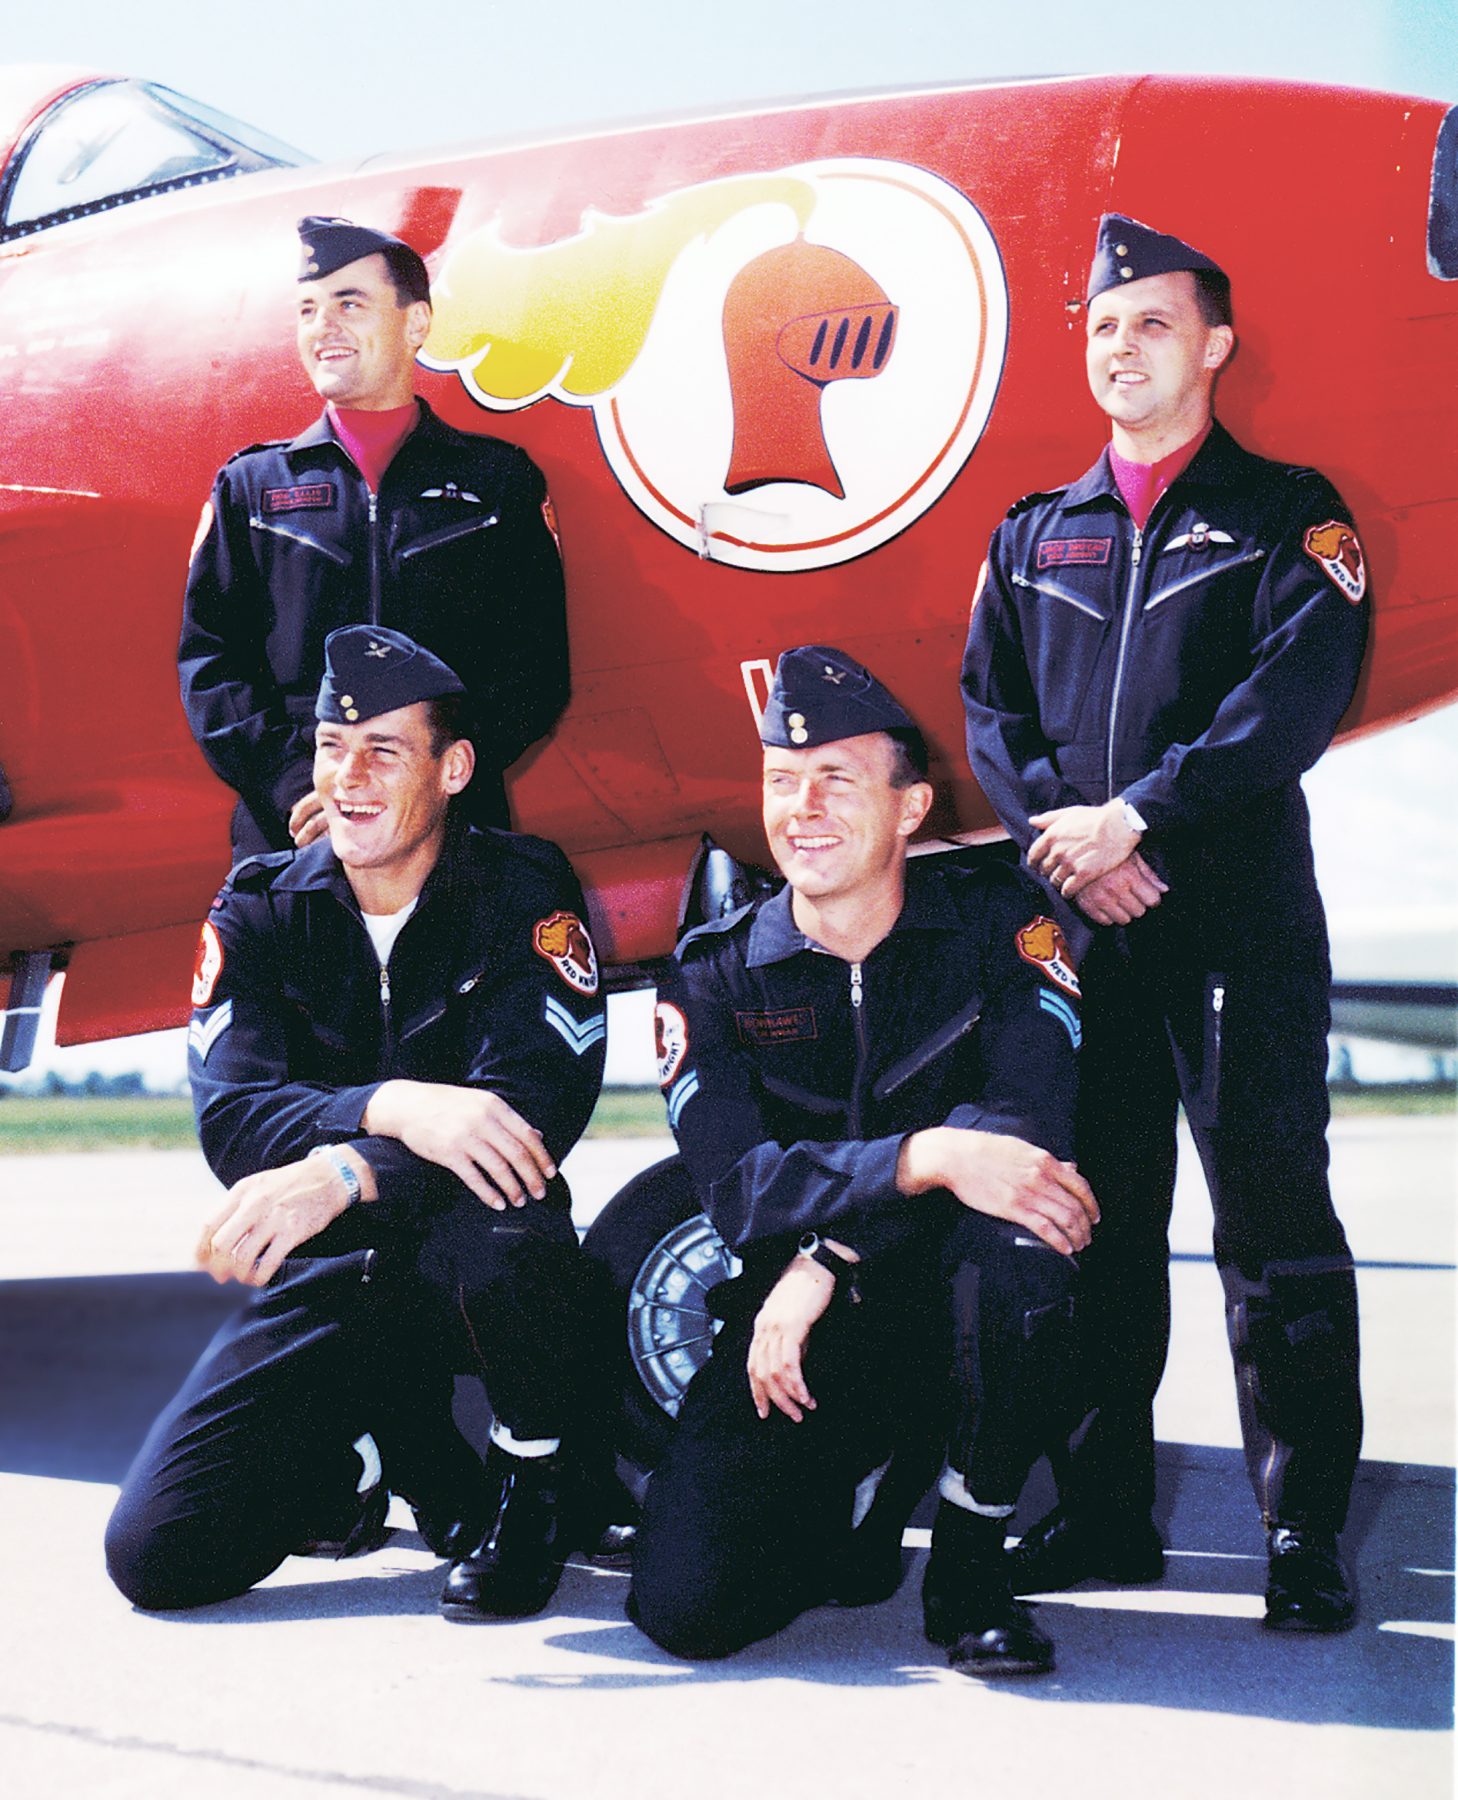 La version centenaire de la formation du Red Knight. À l'avant, on voit le caporal Vince Kavic et le caporal Bob Hawes, et derrière se trouvent le lieutenant d'aviation Rod Ellis et le capitaine d'aviation Jack Waters. PHOTO : Offerte par le lieutenant-colonel (retraité) Dan Dempsey